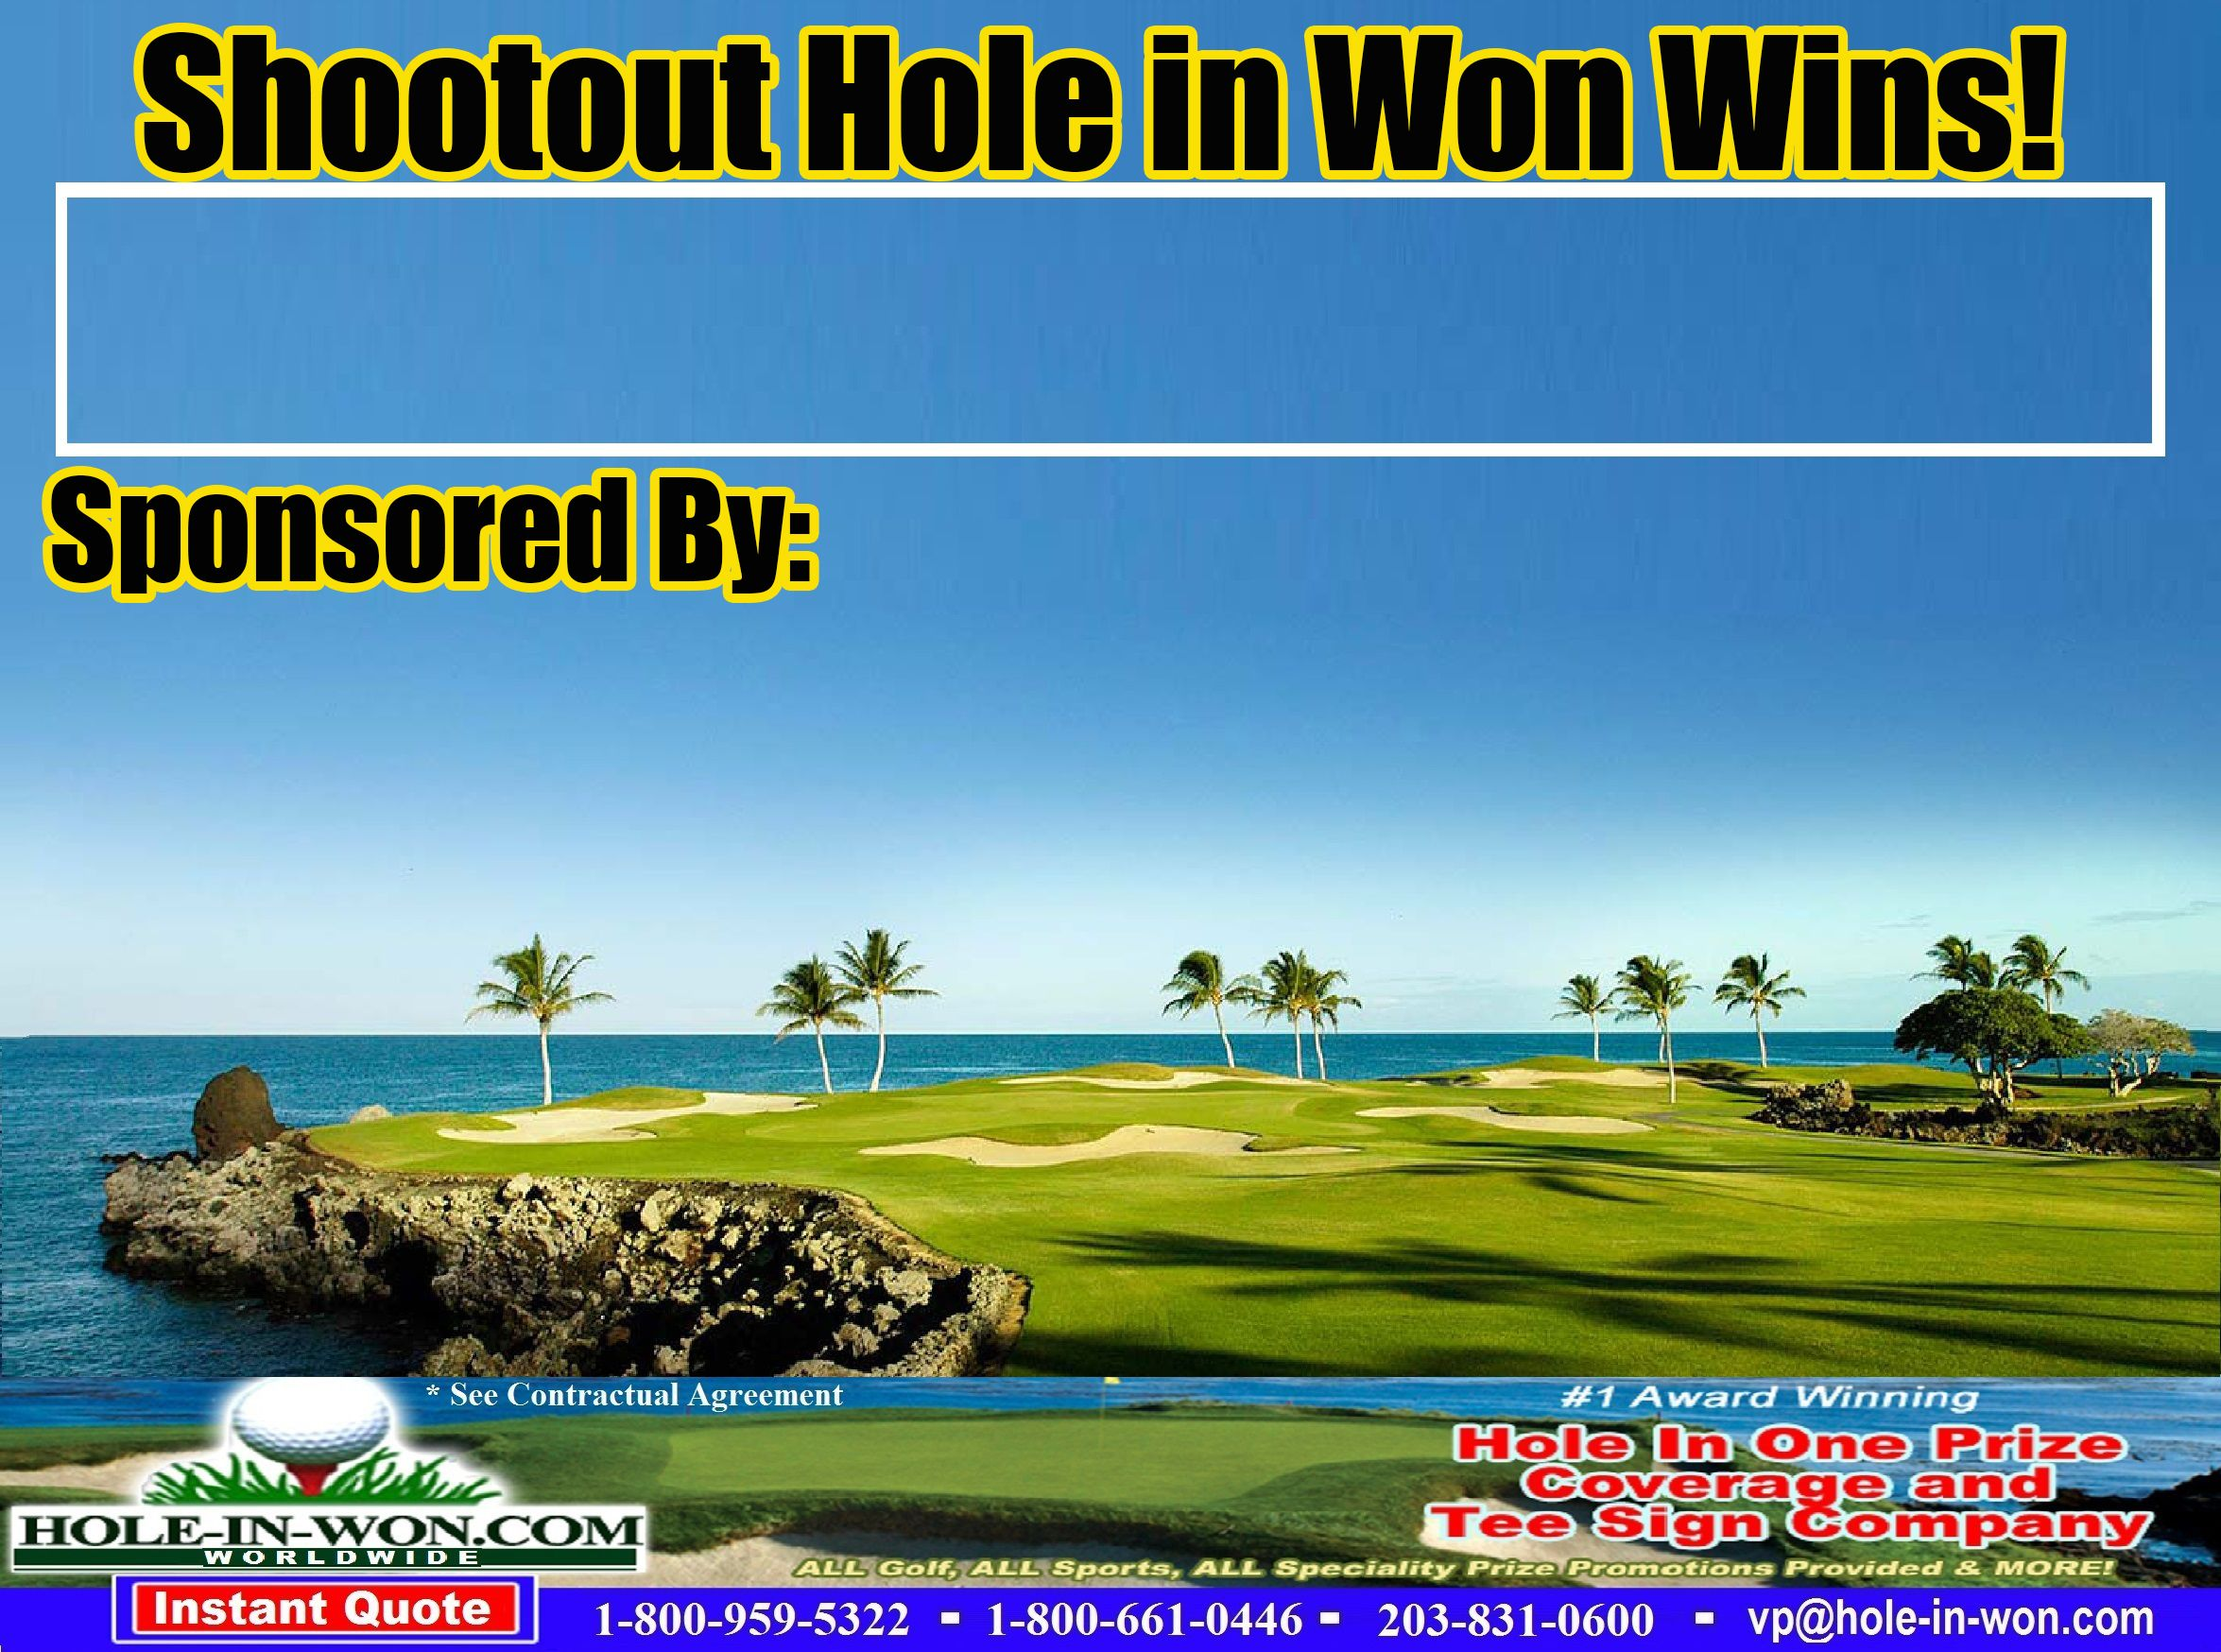 Hole In One Shootout Golf Outing Contests Closest To The Pin Prizes Longest Drive Beat The Pro And More We Have Golf Tournament Golf Contest Ideas Golf Contest